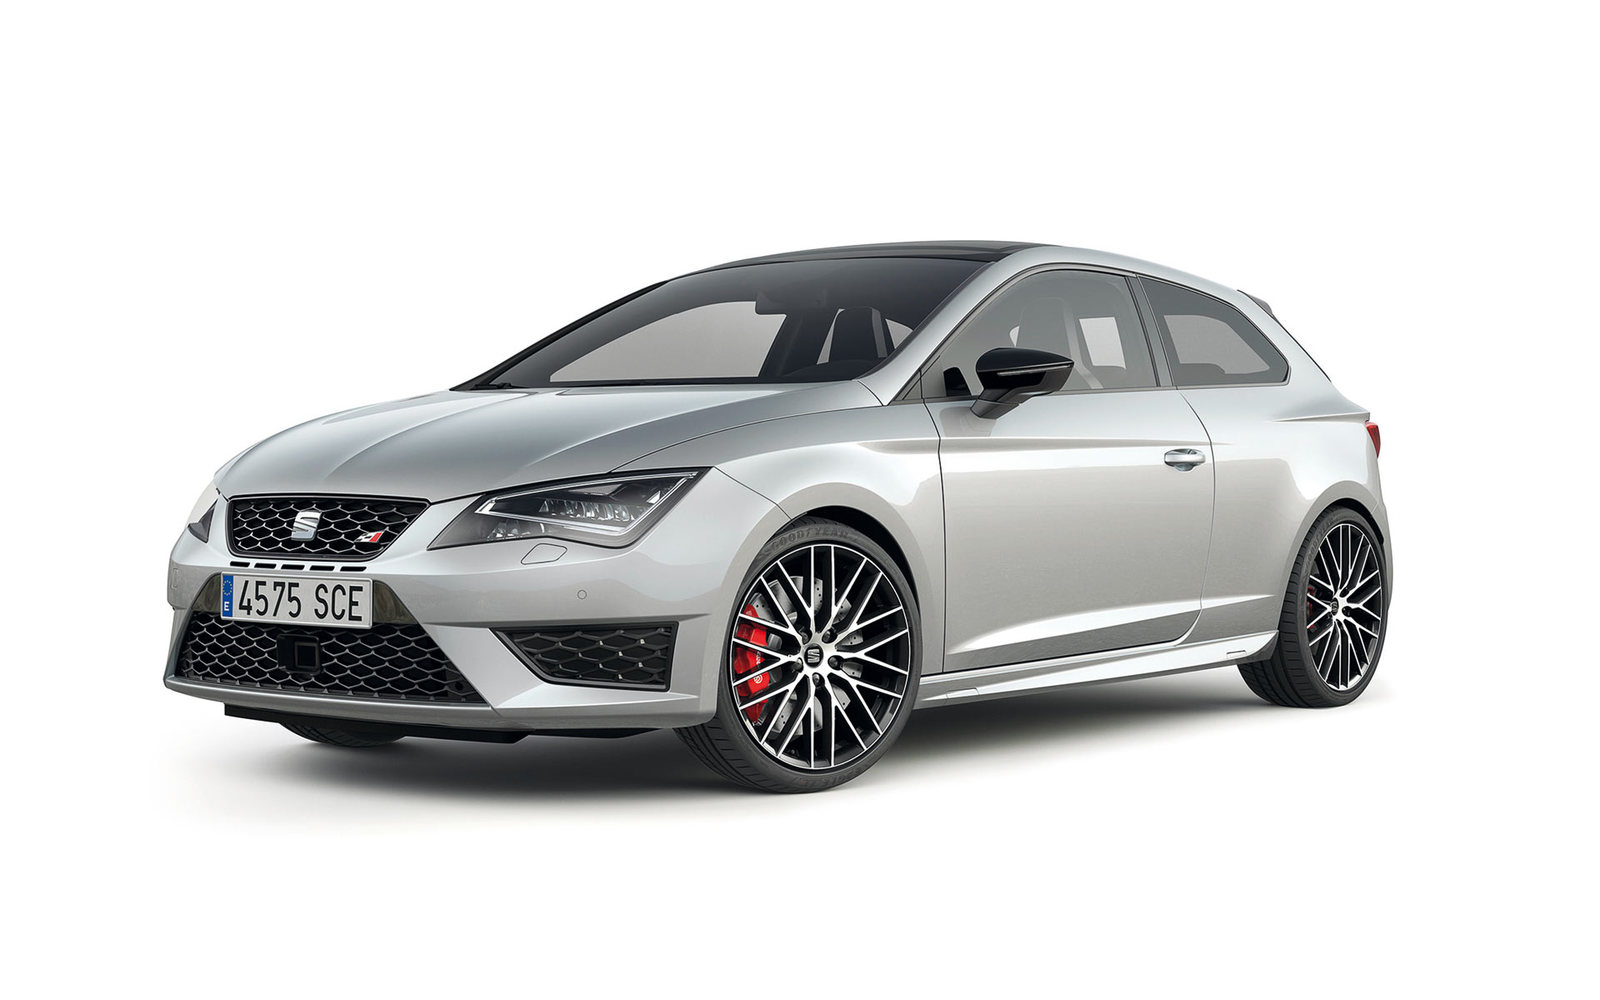 Seat Leon Cupra Performance